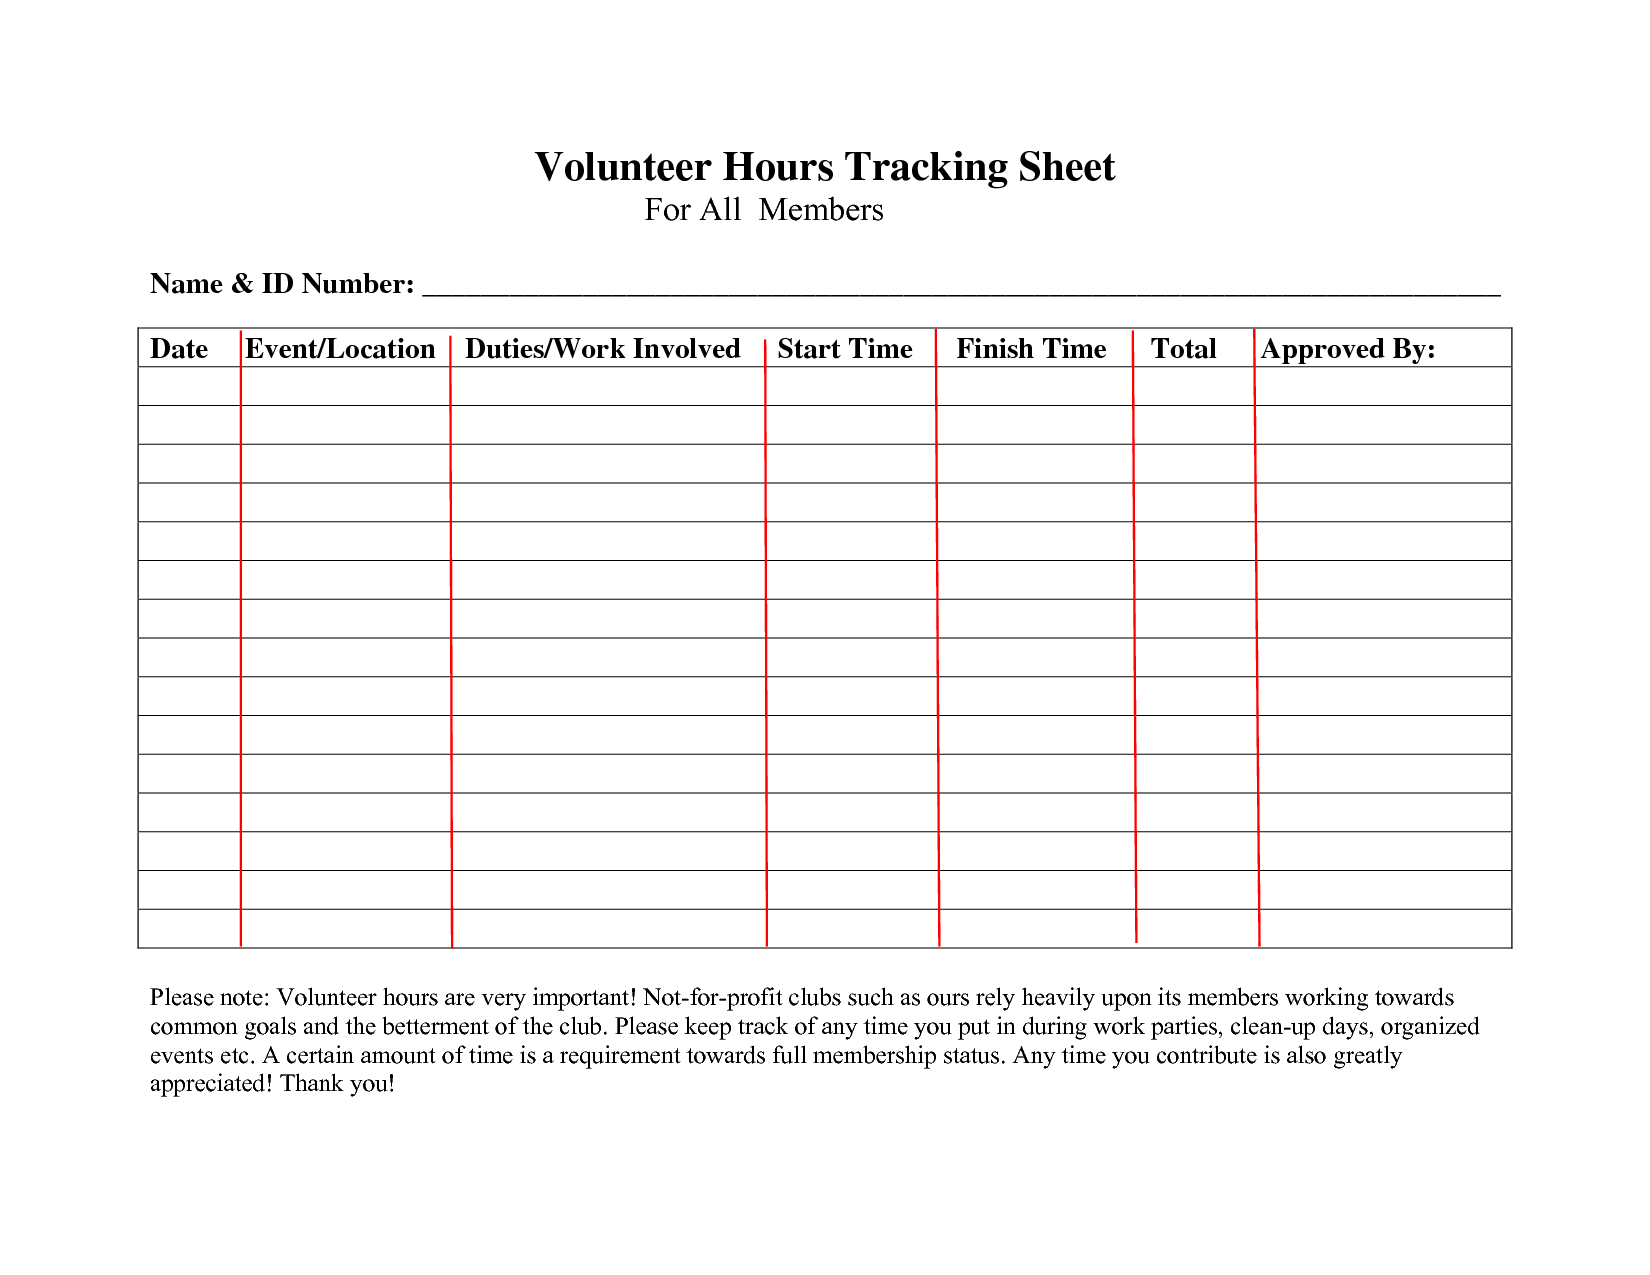 Volunteer+Hours+Log+Sheet+Template | What | Pinterest | Logs ...